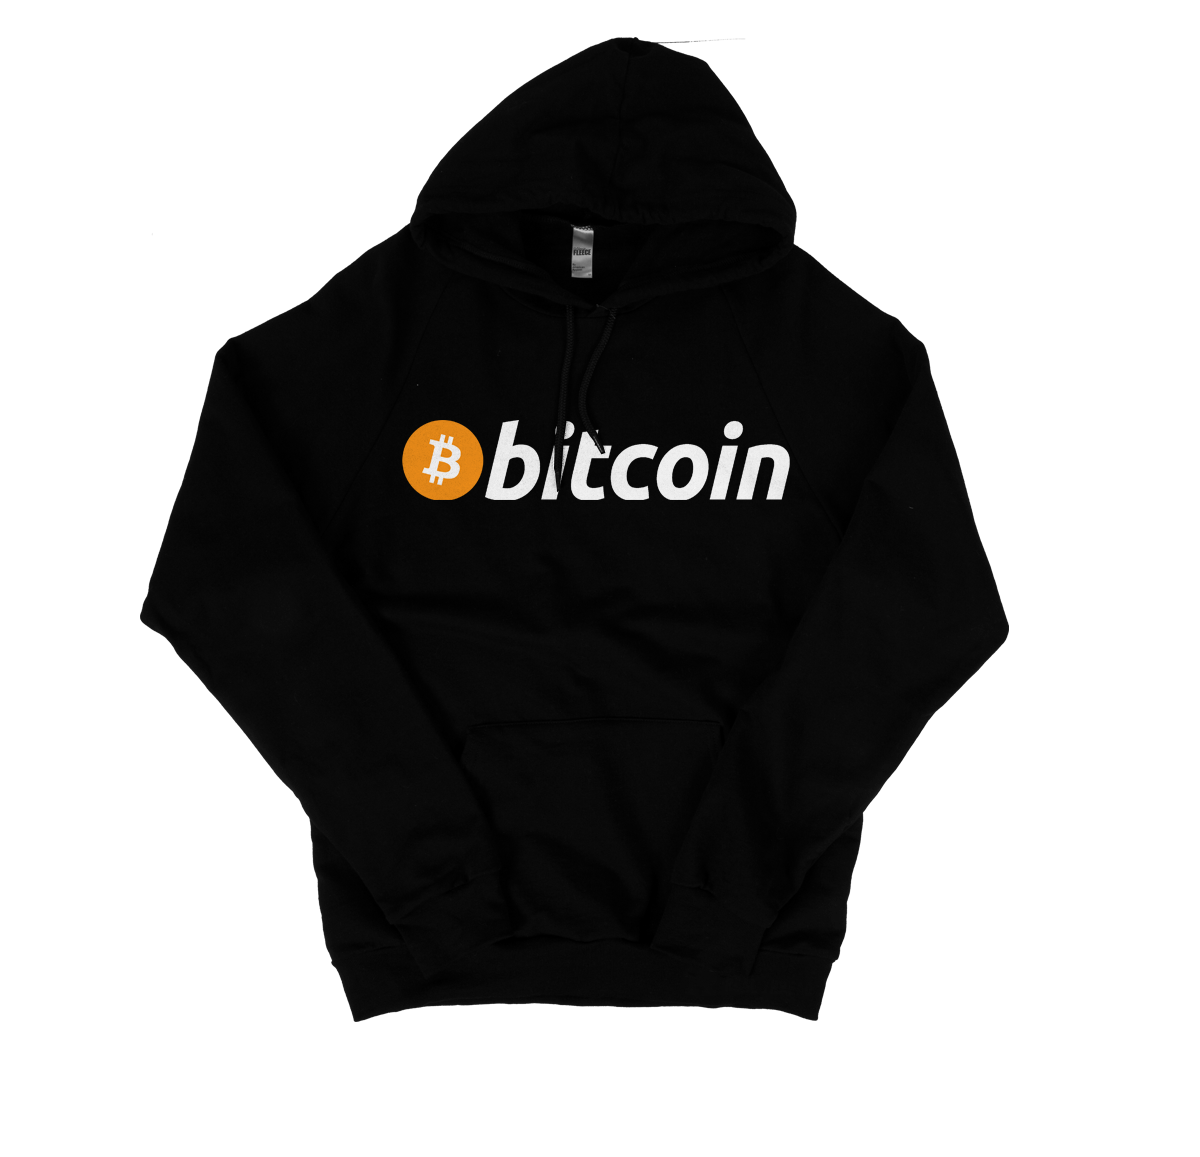 [PRE ORDER] Hoodie Bitcoin 1